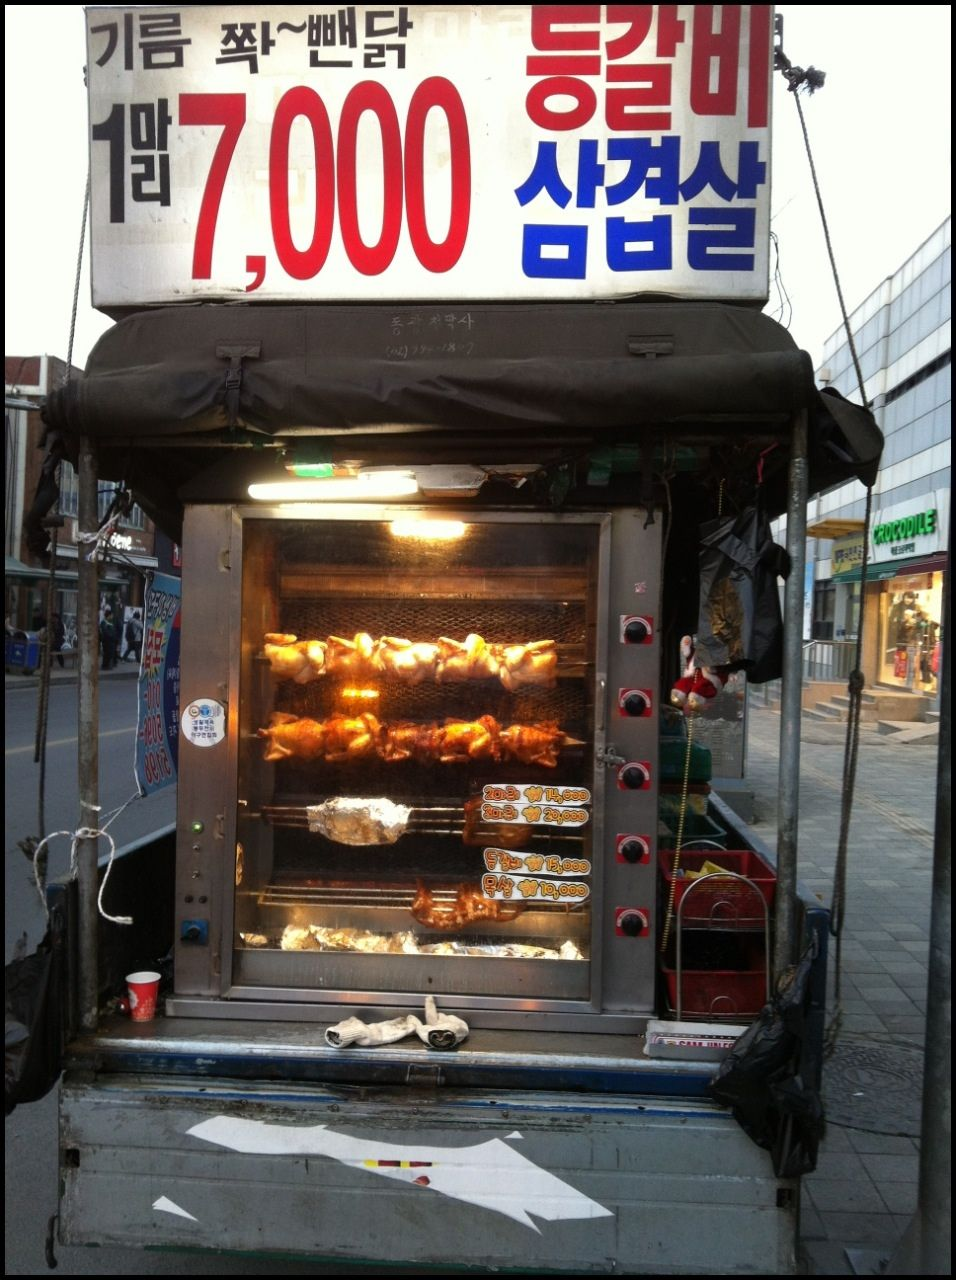 Rotisserie chicken trucks on the side of the street in